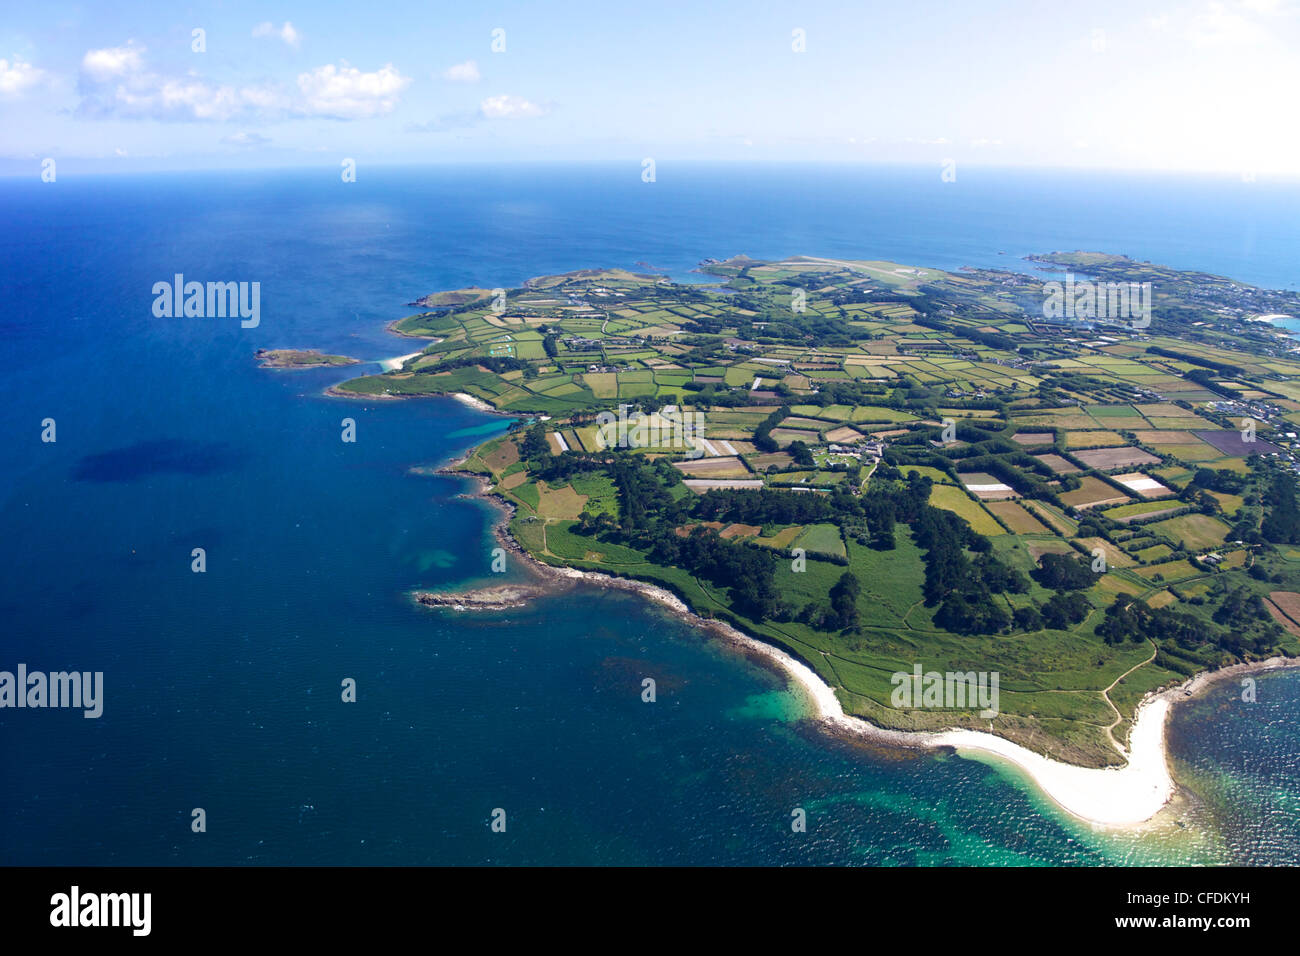 Aerial view of St. Mary's island, Isles of Scilly, England, United Kingdom, Europe - Stock Image